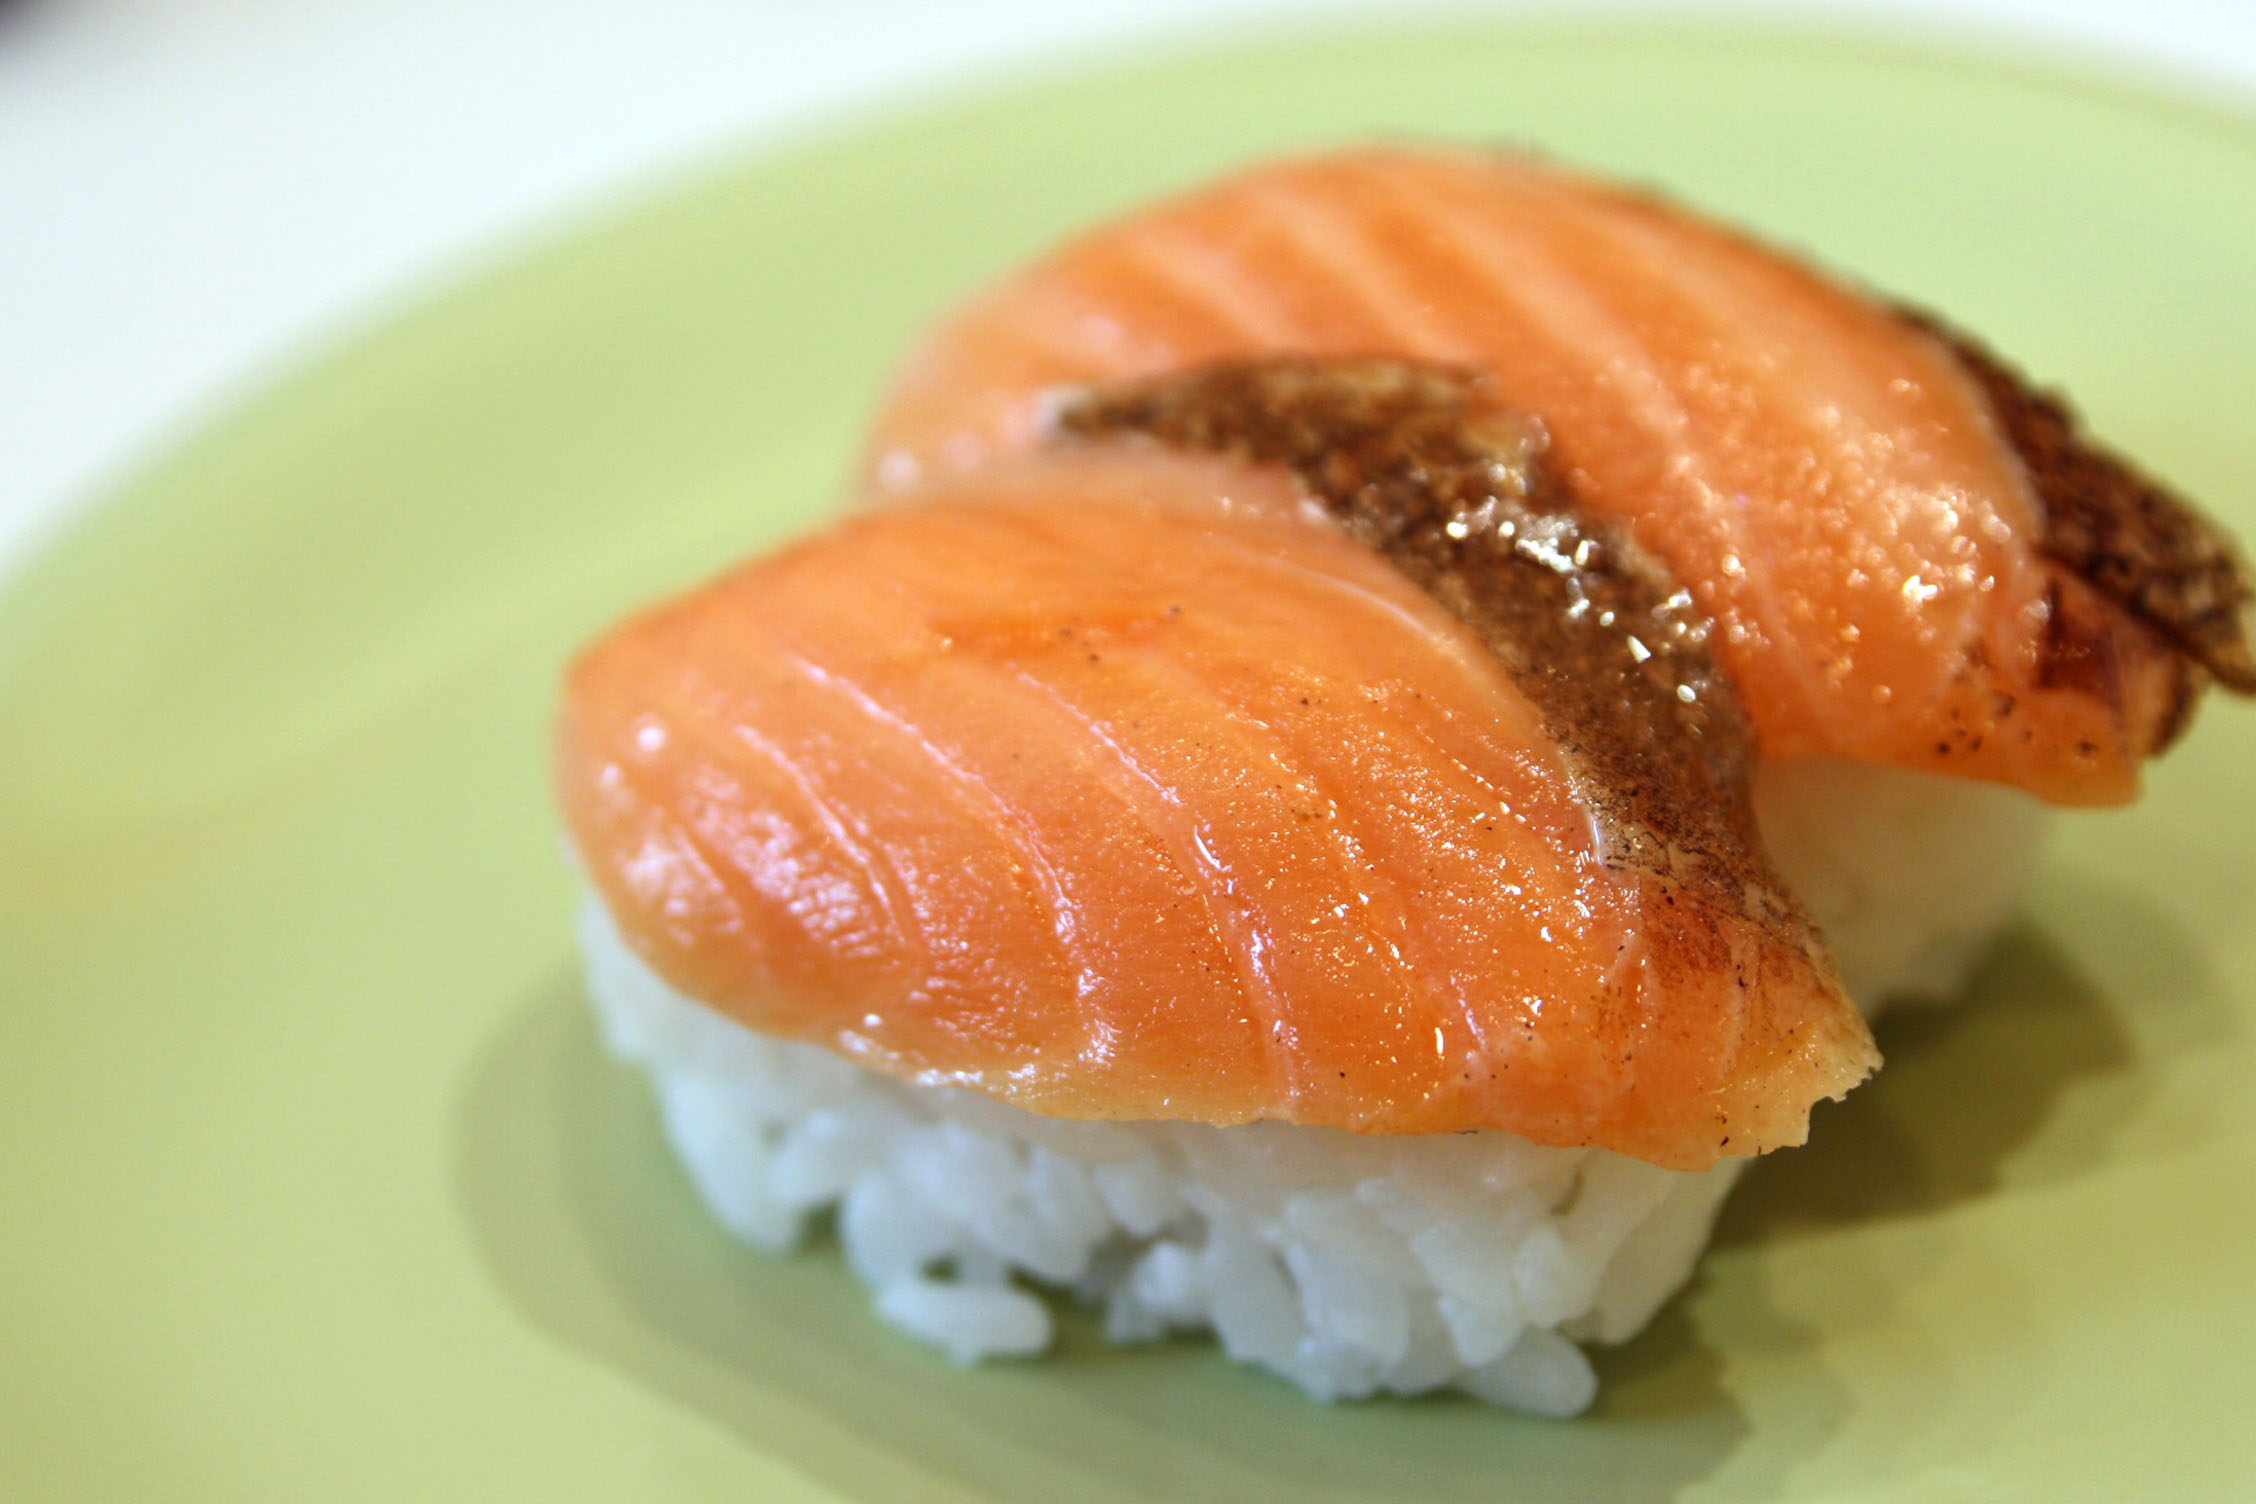 Sushi Express – Everything at $1.80 per plate!